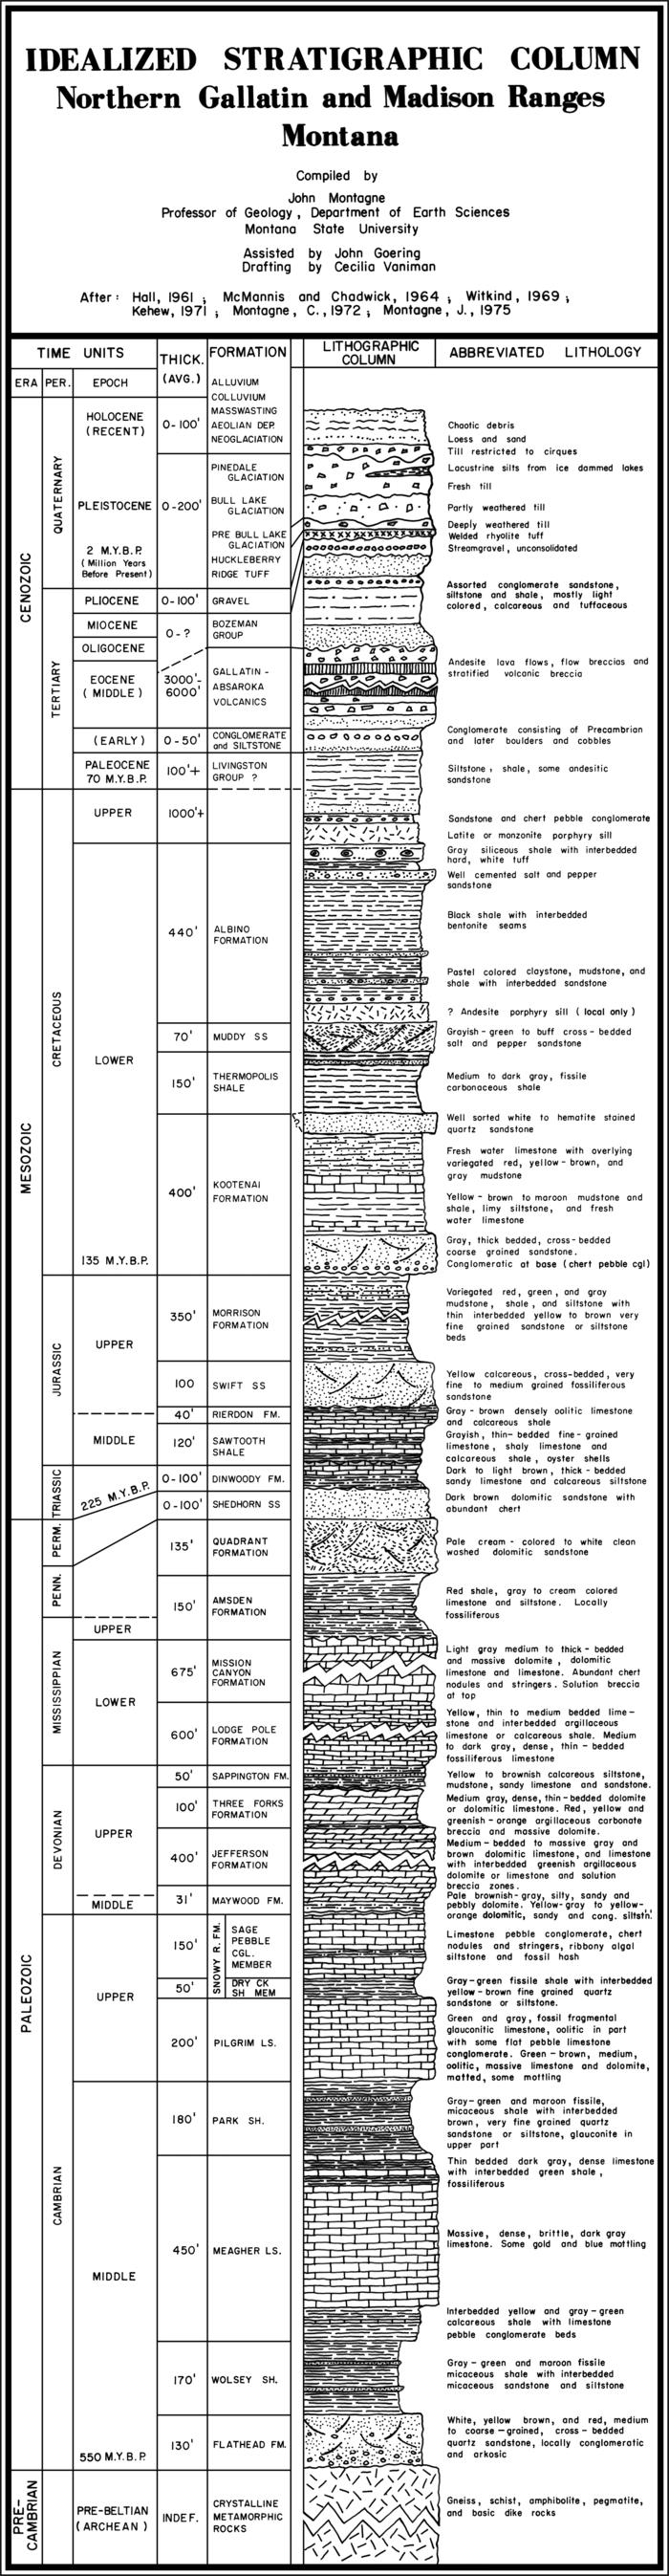 Stratigraphic Column for Montana